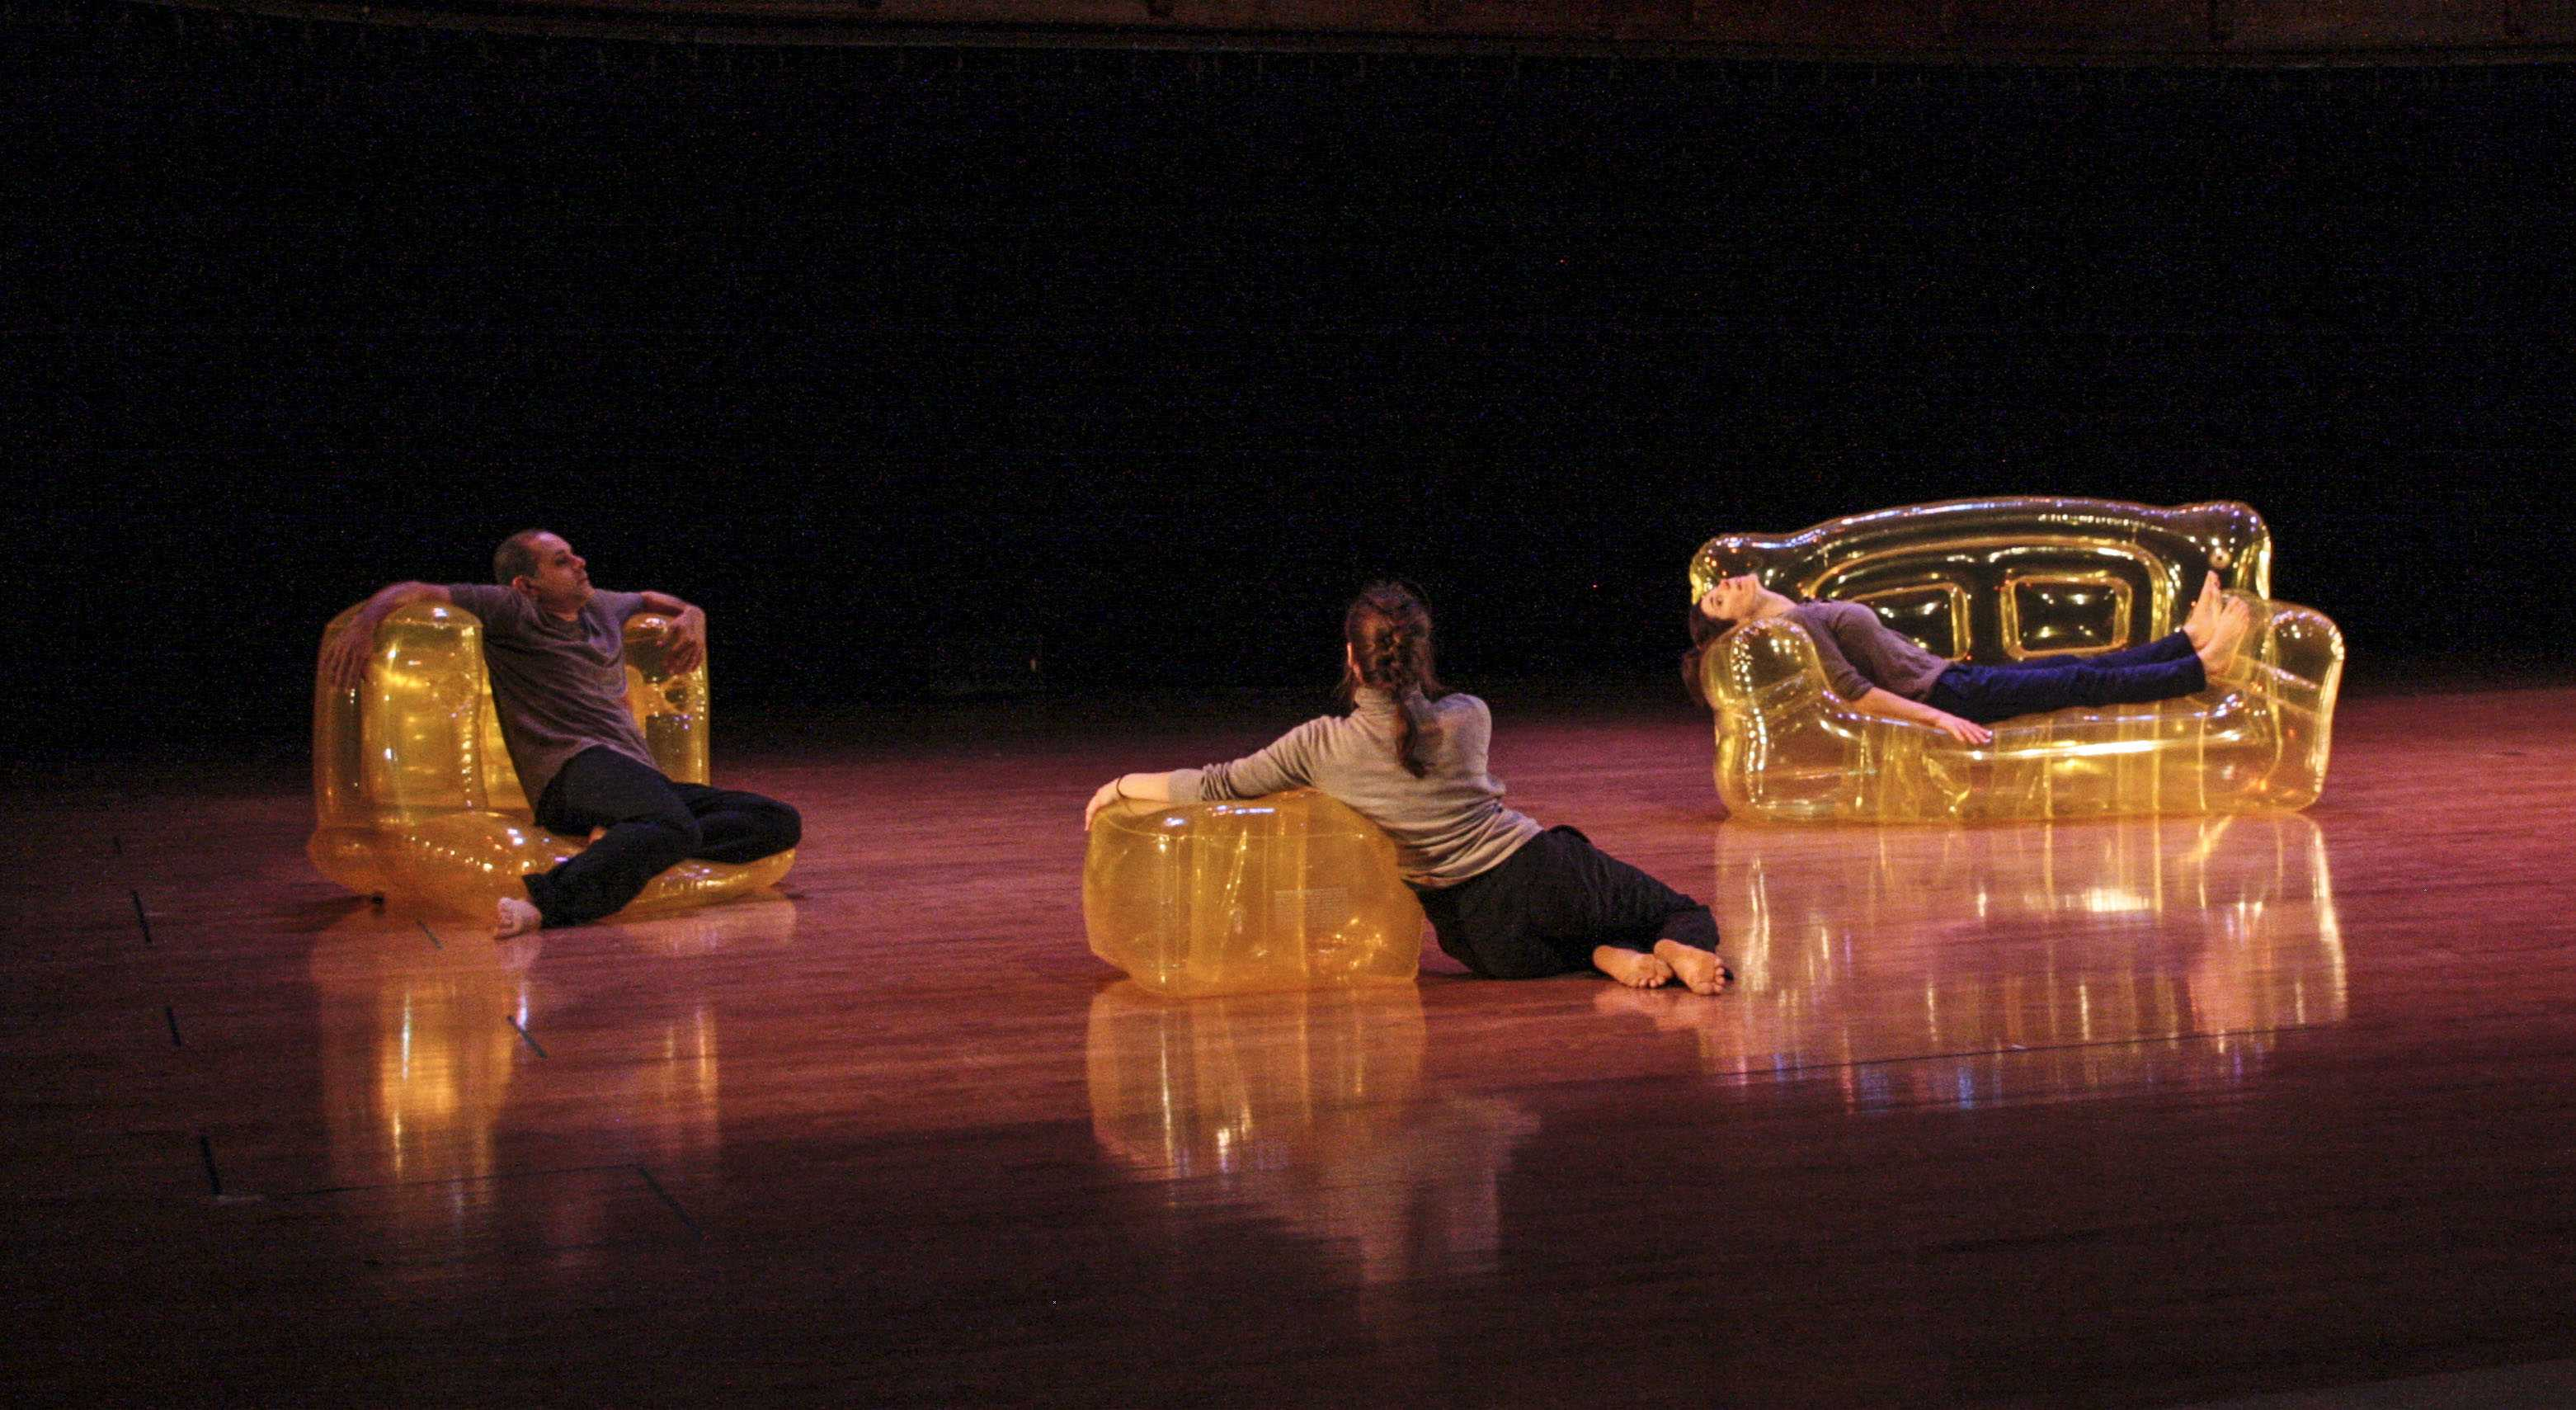 Lionel Popkin, OC '92, and Carolyn Hall, OC '91, with Samantha Mohr, perform Popkin's Inflatable Trio, a collaborative dance set to music by Associate Professor of Computer Music and Digital Arts Tom Lopez, OC '89.